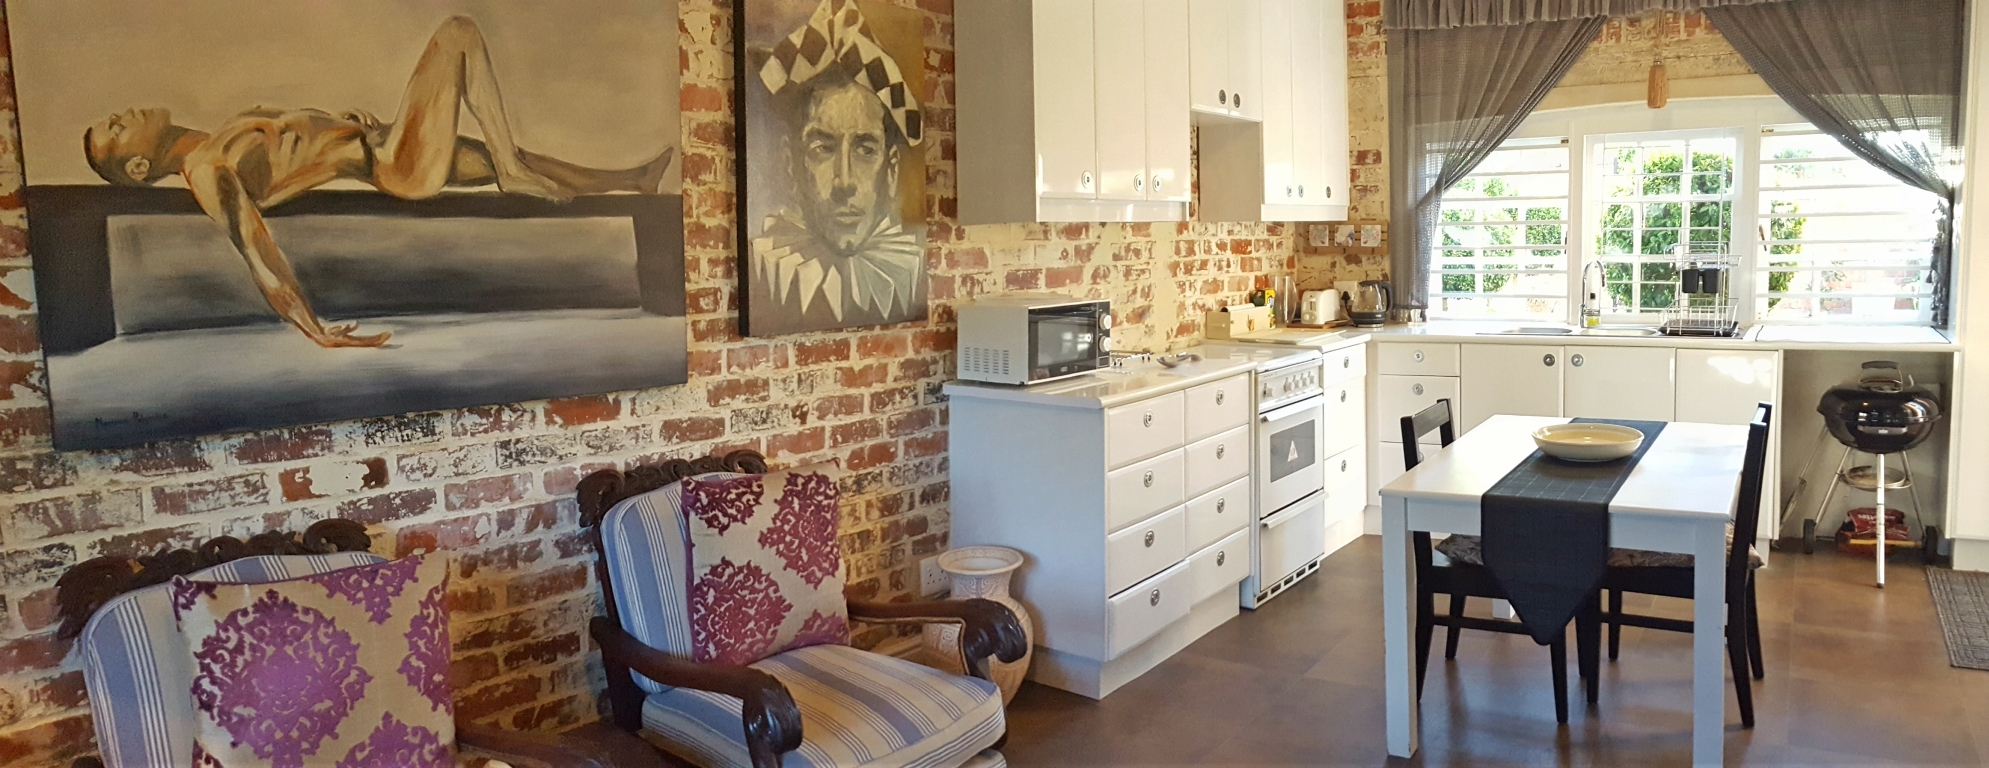 Gardenfly Guesthouse, self-catering accommodation, somerset west, winelands, beach, strand, western cape, gay friendly, gay-friendly